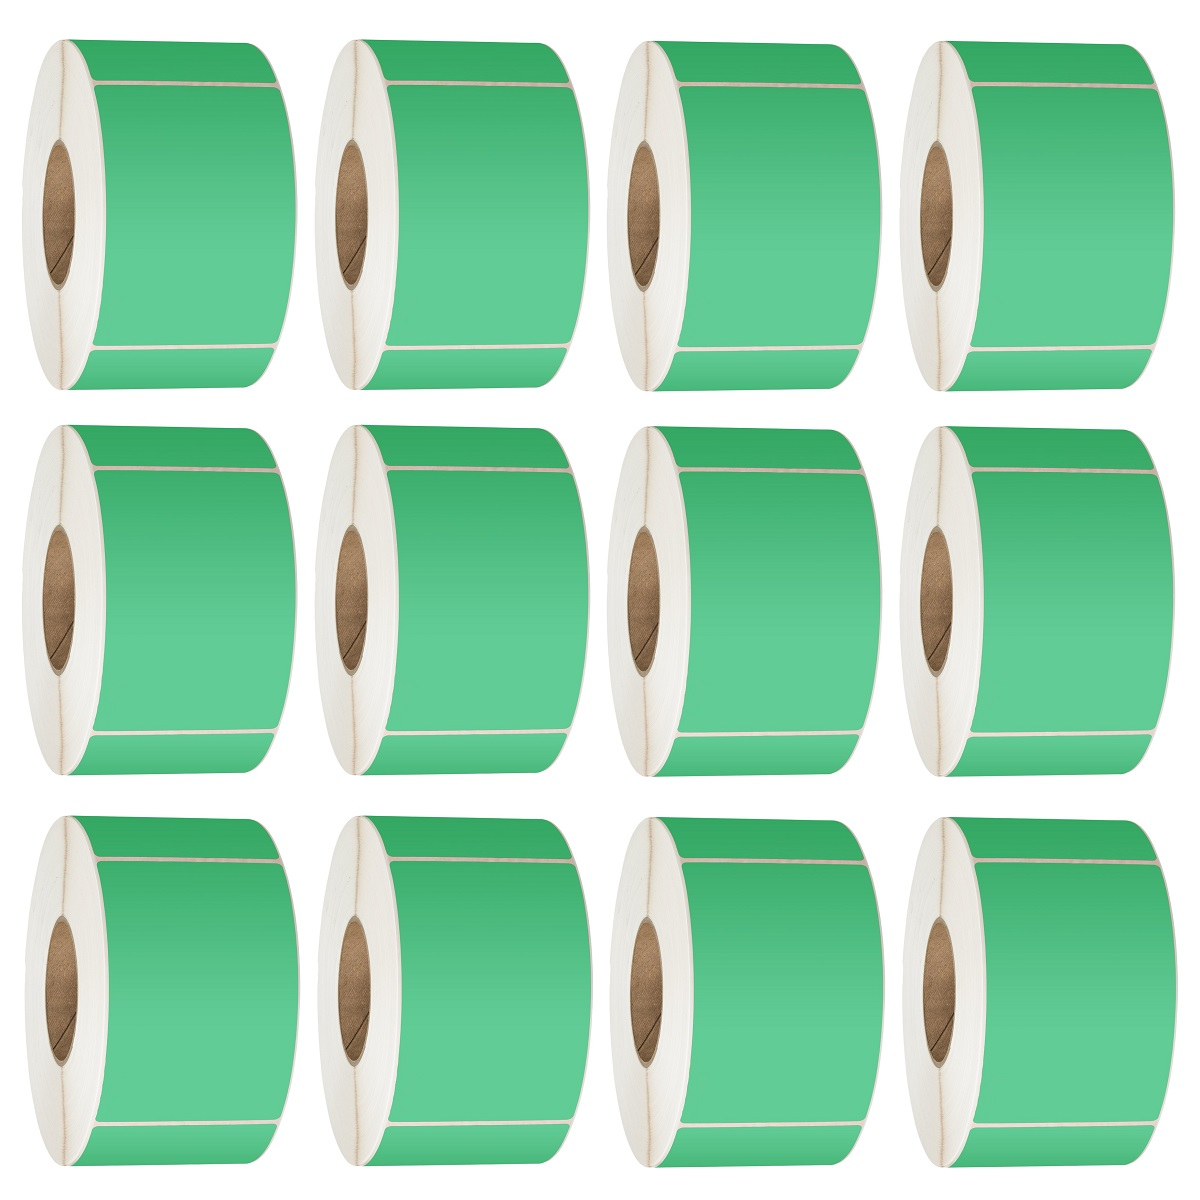 View 76X48 Thermal Transfer Labels 3000/Roll 76mm Core Green - 12 Rolls